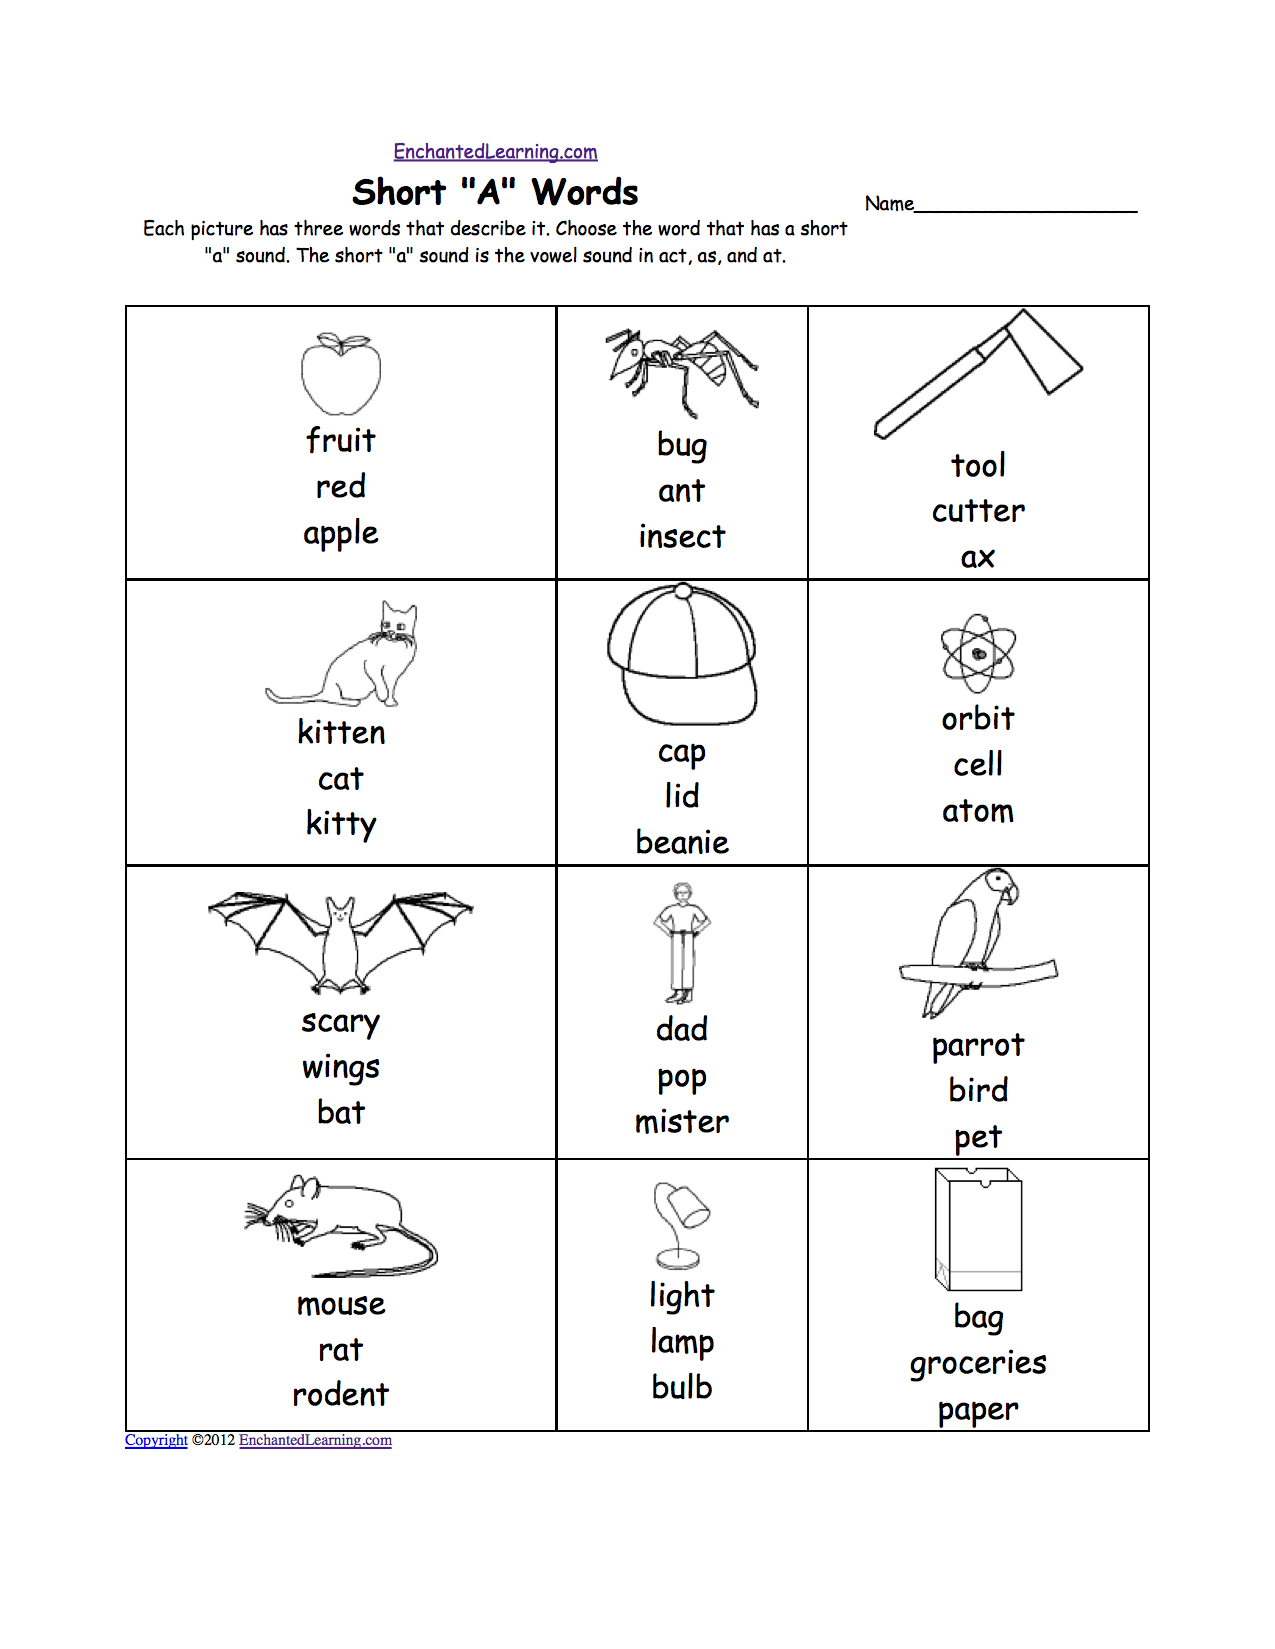 worksheet Soil Texture Triangle Worksheet the soil textural triangle worksheet answers best and most texture dimensional analysis abitlikethis st patricks day phonics worksheets a